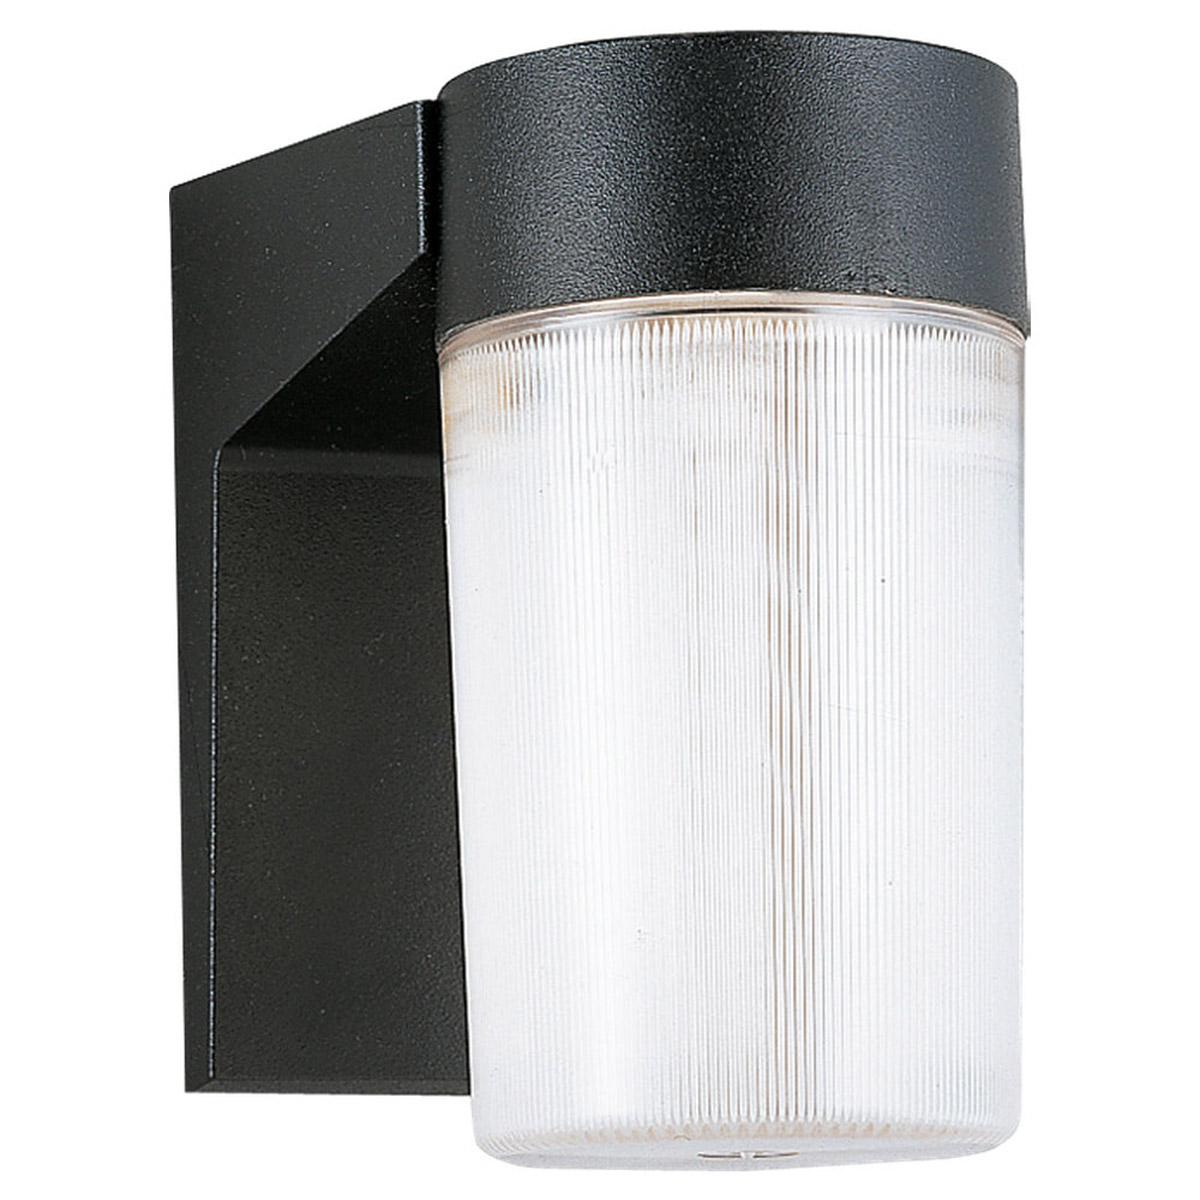 Sea Gull Lighting Signature 2 Light Outdoor Wall Lantern in Black 8907-12 photo